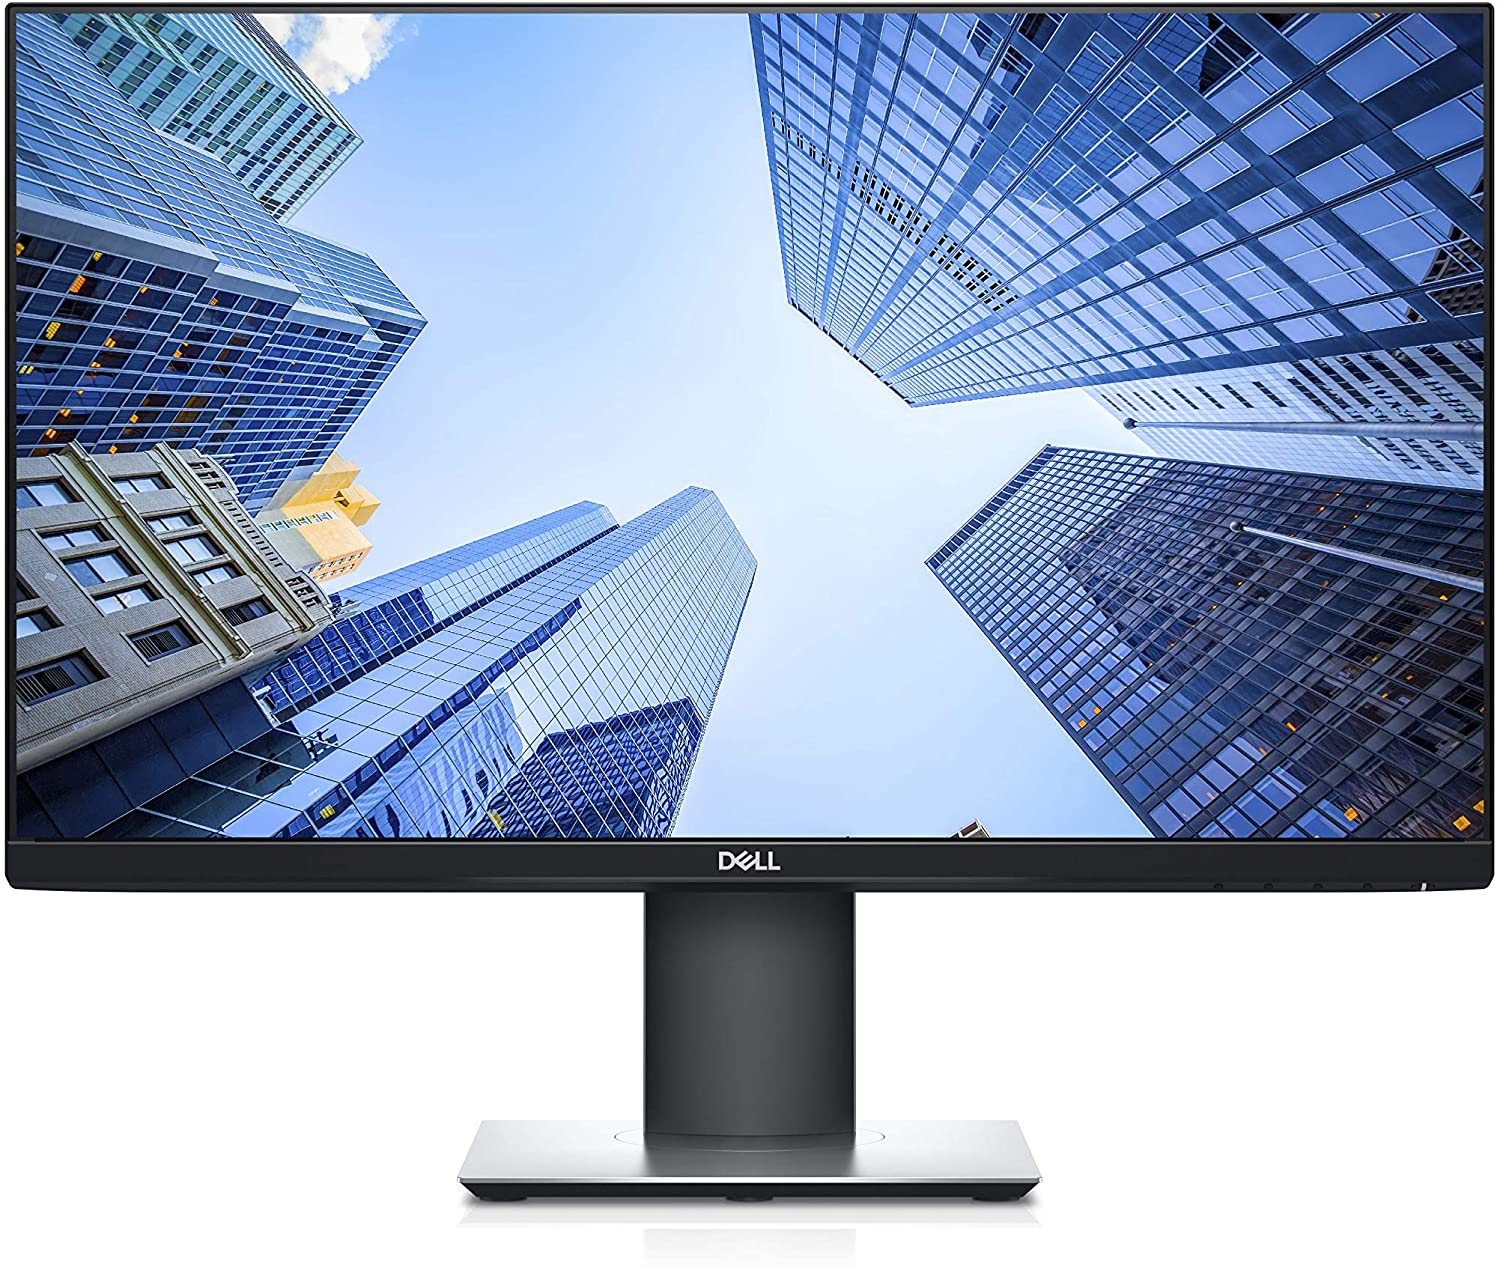 Dell P2419H 24 Inch LED-Backlit, Anti-Glare, 3H Hard Coating IPS Monitor - (8 ms Response, FHD 1920 x 1080 at 60Hz, 1000:1 Contrast, with ComfortView DisplayPort, VGA, HDMI and USB), Black